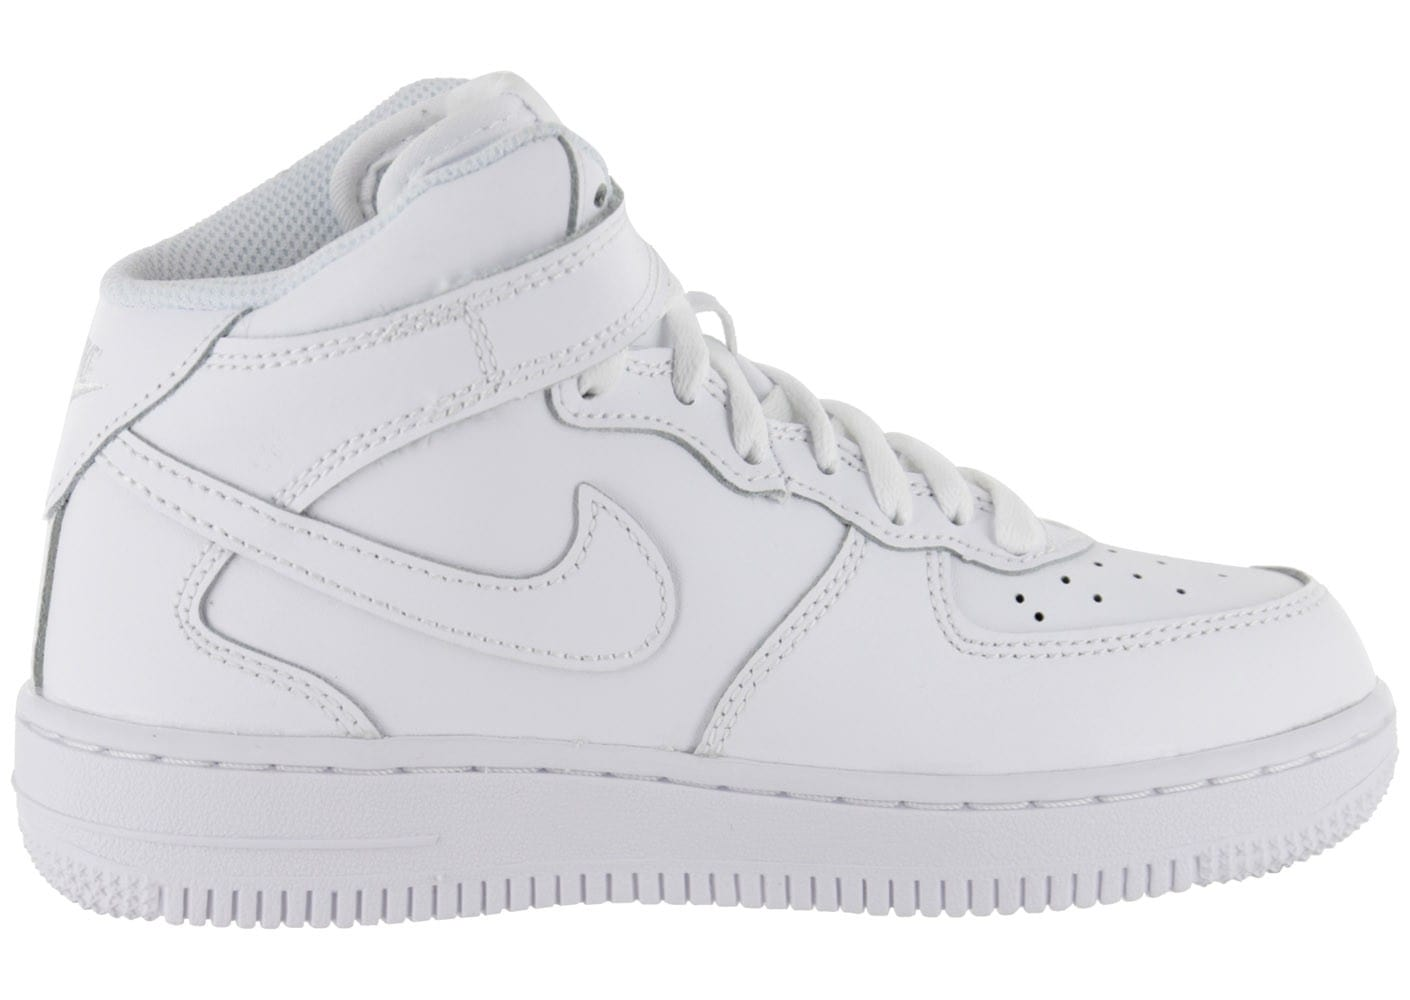 new style 0306f 6aaf9 nike air force 1 enfant rose, Cliquez pour zoomer Chaussures Nike Air Force  1 Mid